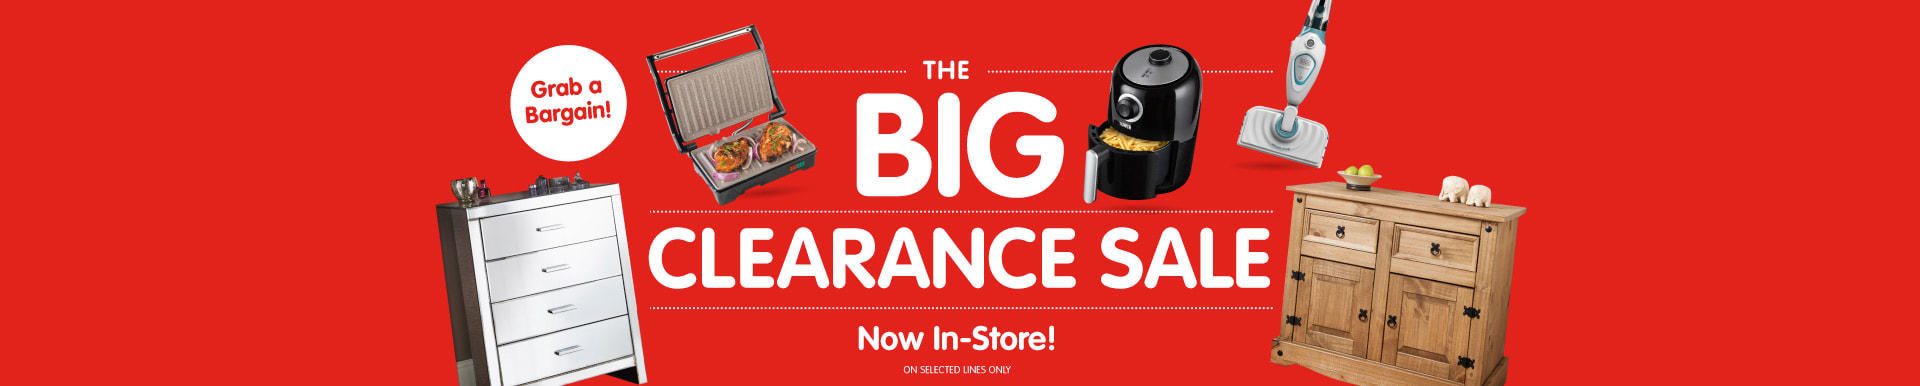 Big Clearance Sale at B&M.